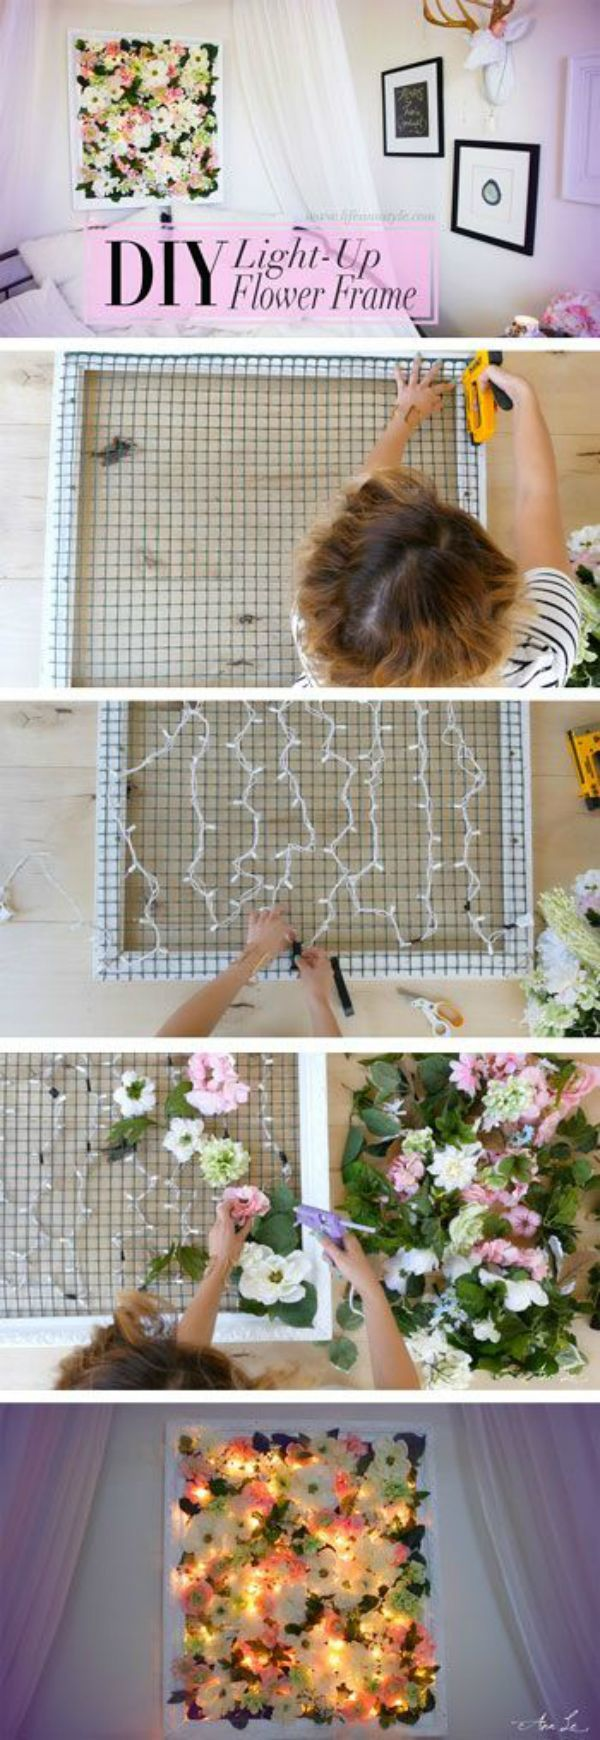 cheap bedroom decor ideas diy light up flower frame http - Bedroom Ideas Pinterest Diy